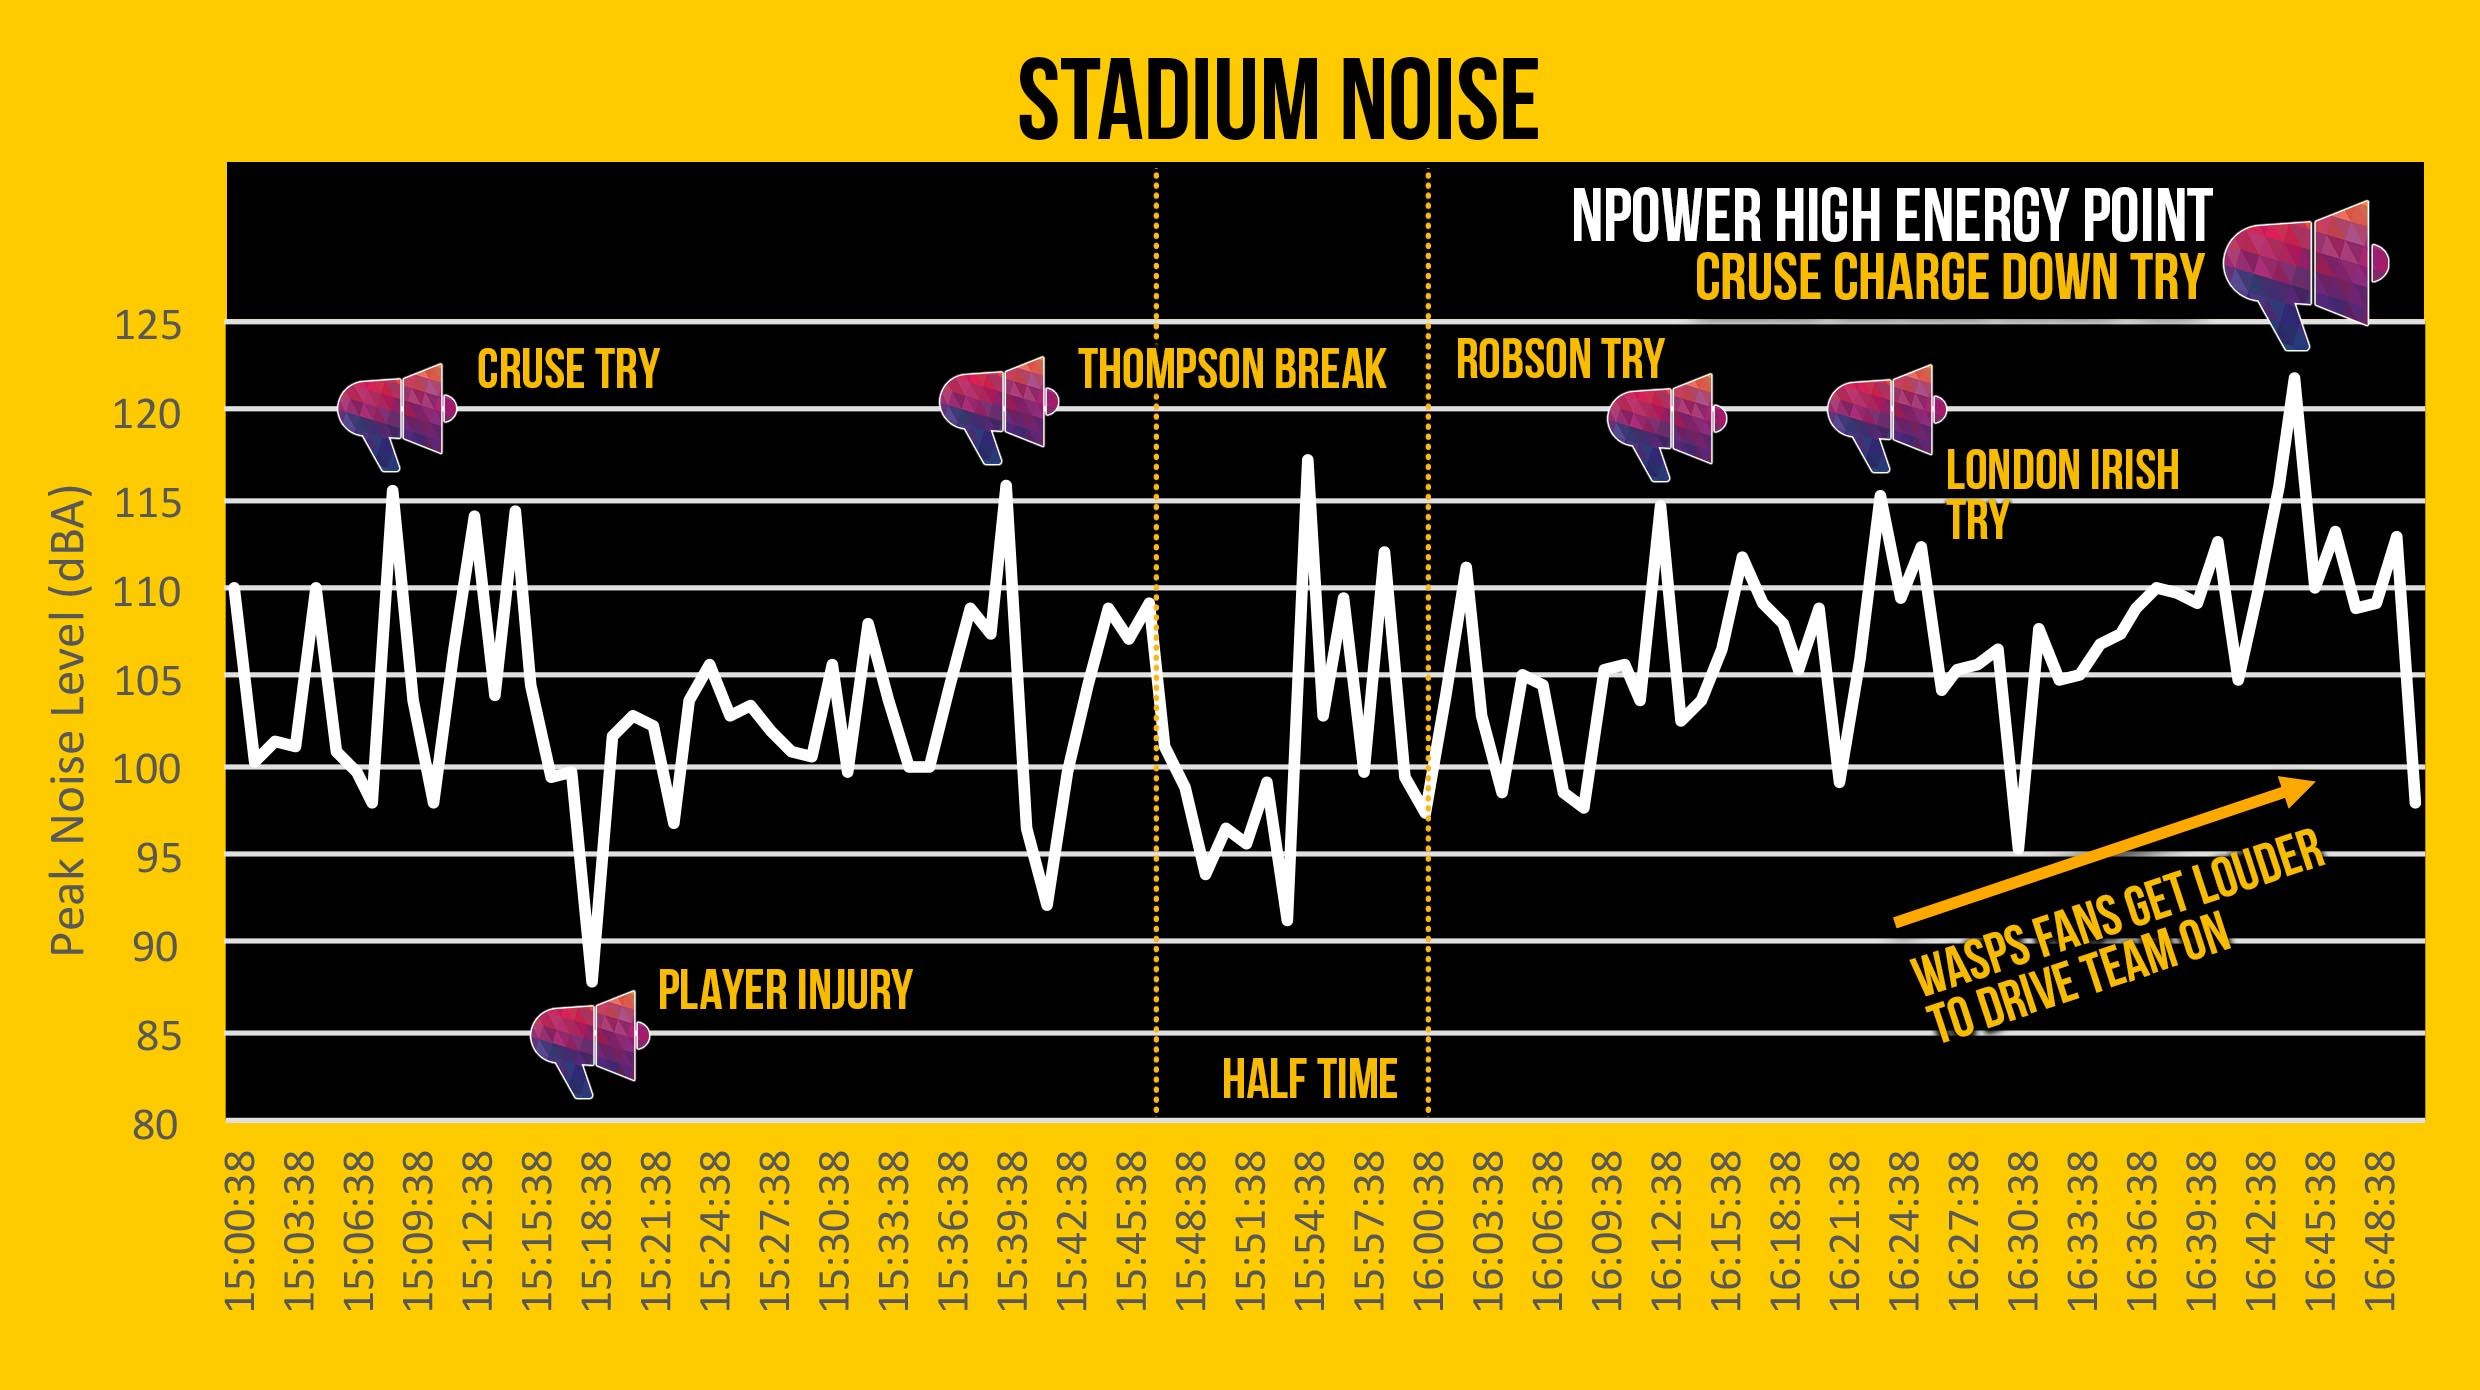 Crowd Noise Levels - npower wasps super power experiment